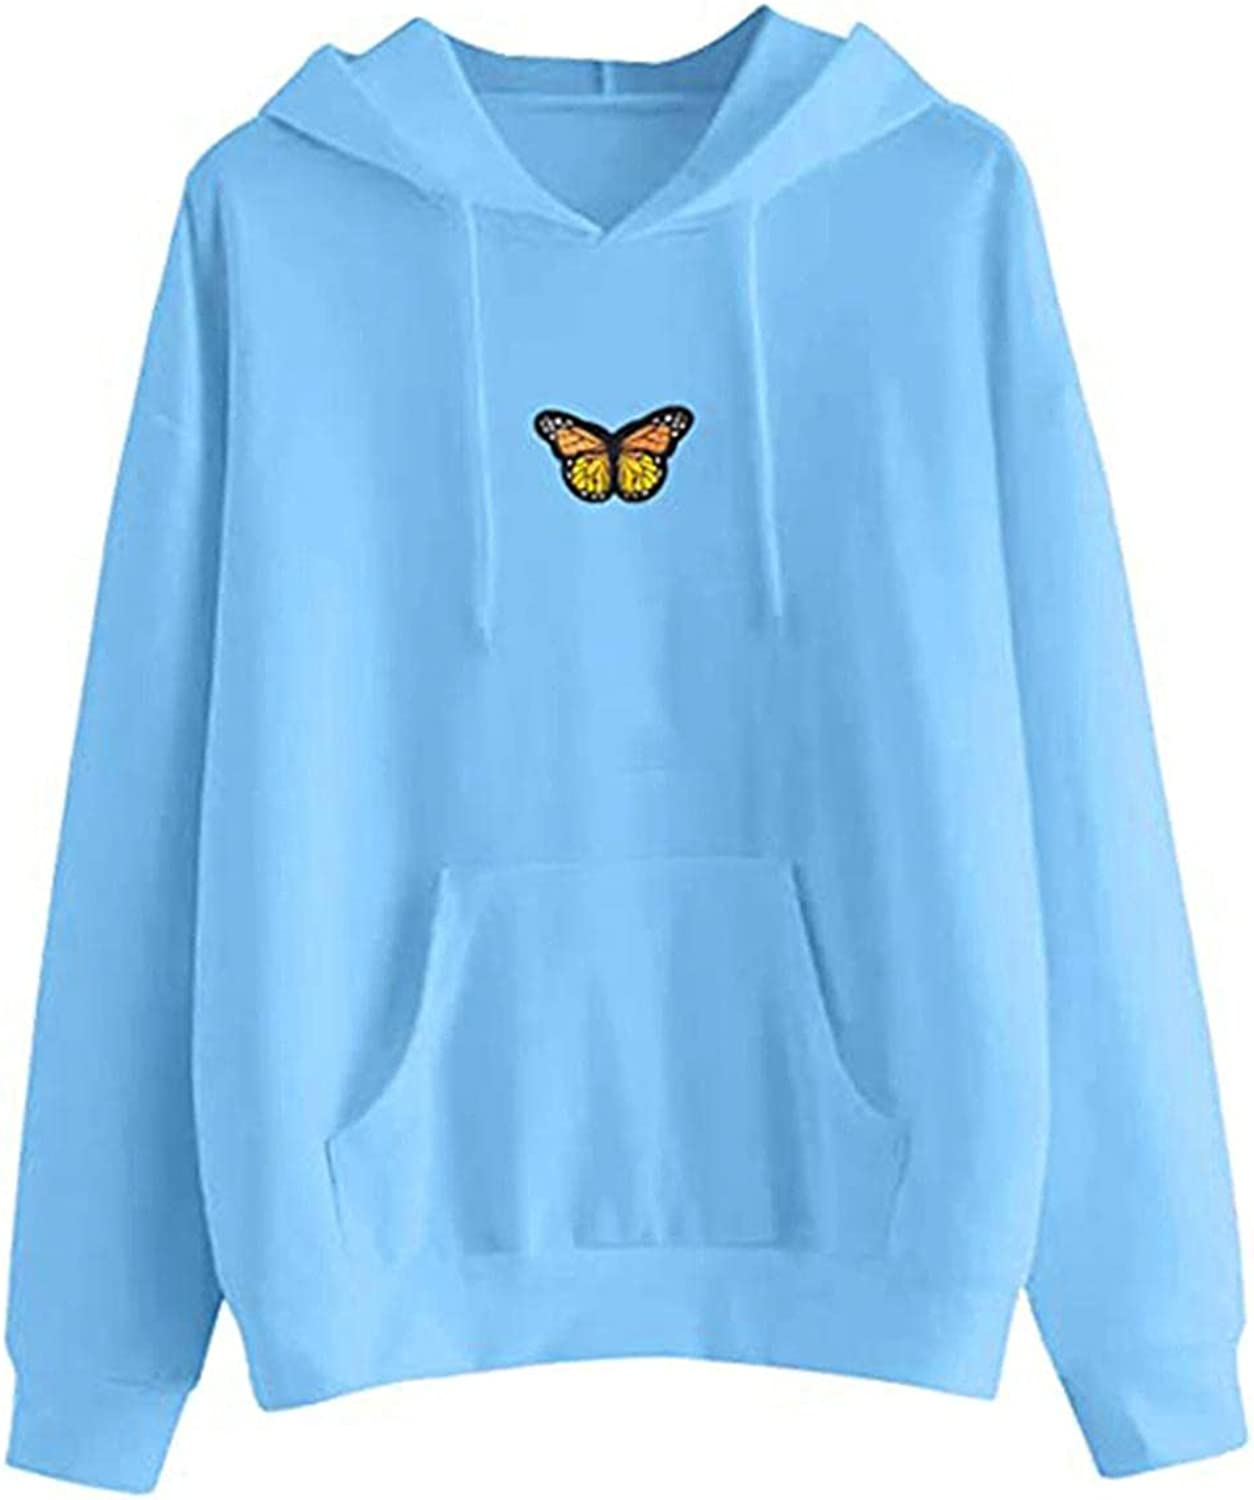 Hoodies for Women with Designs Aesthetic,Teen Girls Casual Long Sleeve Sweatshirts Butterfly Drawstring Lightweight Tops